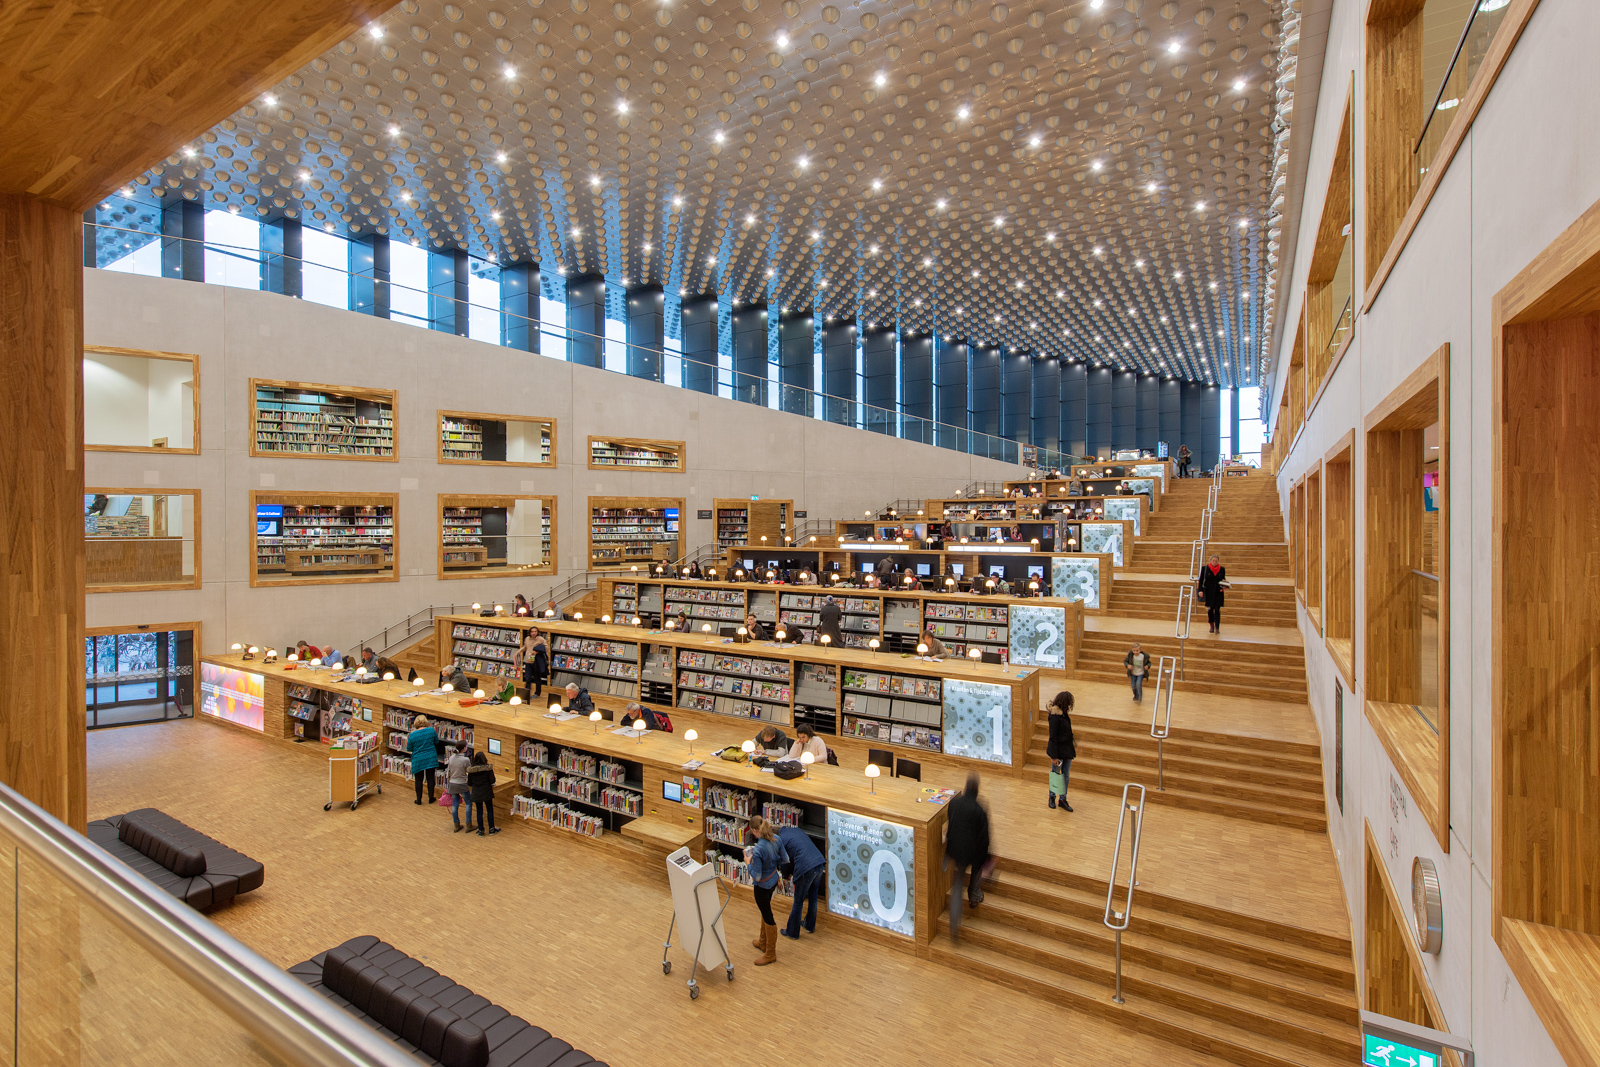 Amersfoort eemhuis bibliotheek architect neutelings for Interieur amersfoort